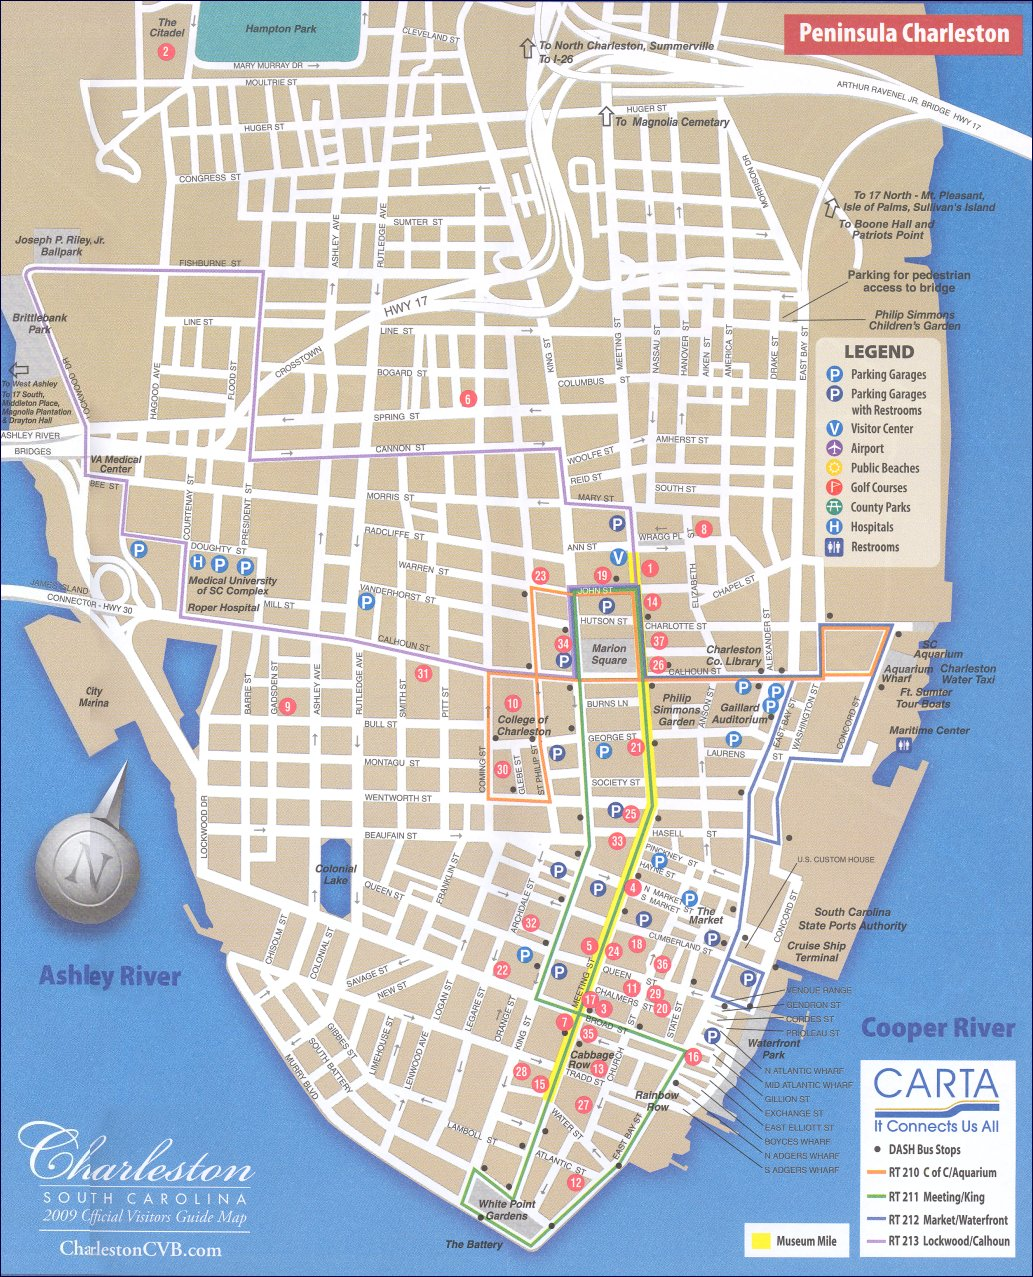 Map of downtown Charleston Map French Quarter Hotels on midtown manhattan hotels map, french quarter district map, large french quarter map, hotels near grand canyon map, french quarter street map, riverside hotels map, pittsburgh hotels map, french quarter property map, french quarter interactive map, new orleans hotels map, michigan avenue hotels map, st. martin french quarter map, downtown cleveland hotels map, charleston hotels map, avondale hotels map, denver hotels map, french quarter restaurant map, fisherman's wharf hotels map, french quarter walking map, best french quarter map,